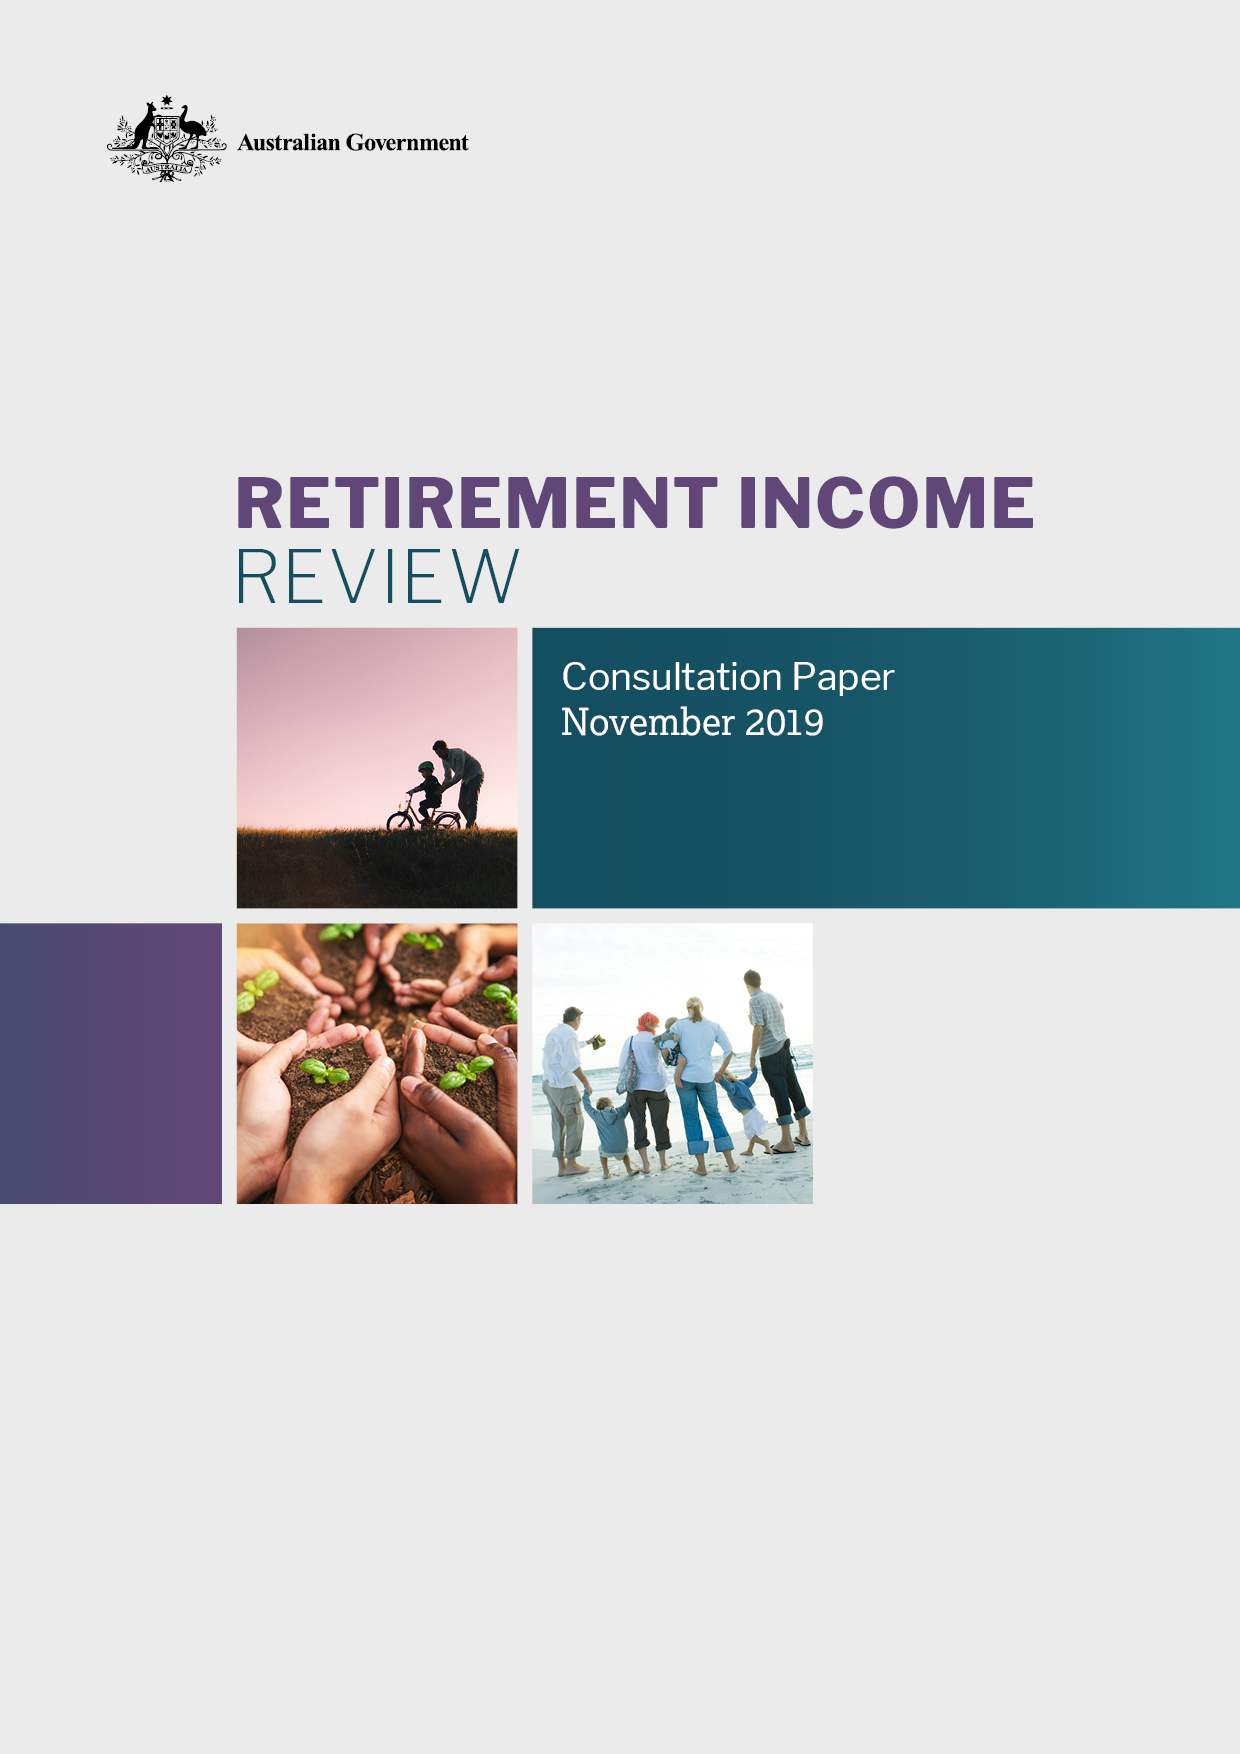 H:\MCD\Publishing\Graphic Design Services Team\Projects\2019\Retirement Income Review 29901\proofs\Retirement Income Review Cover_final.jpg